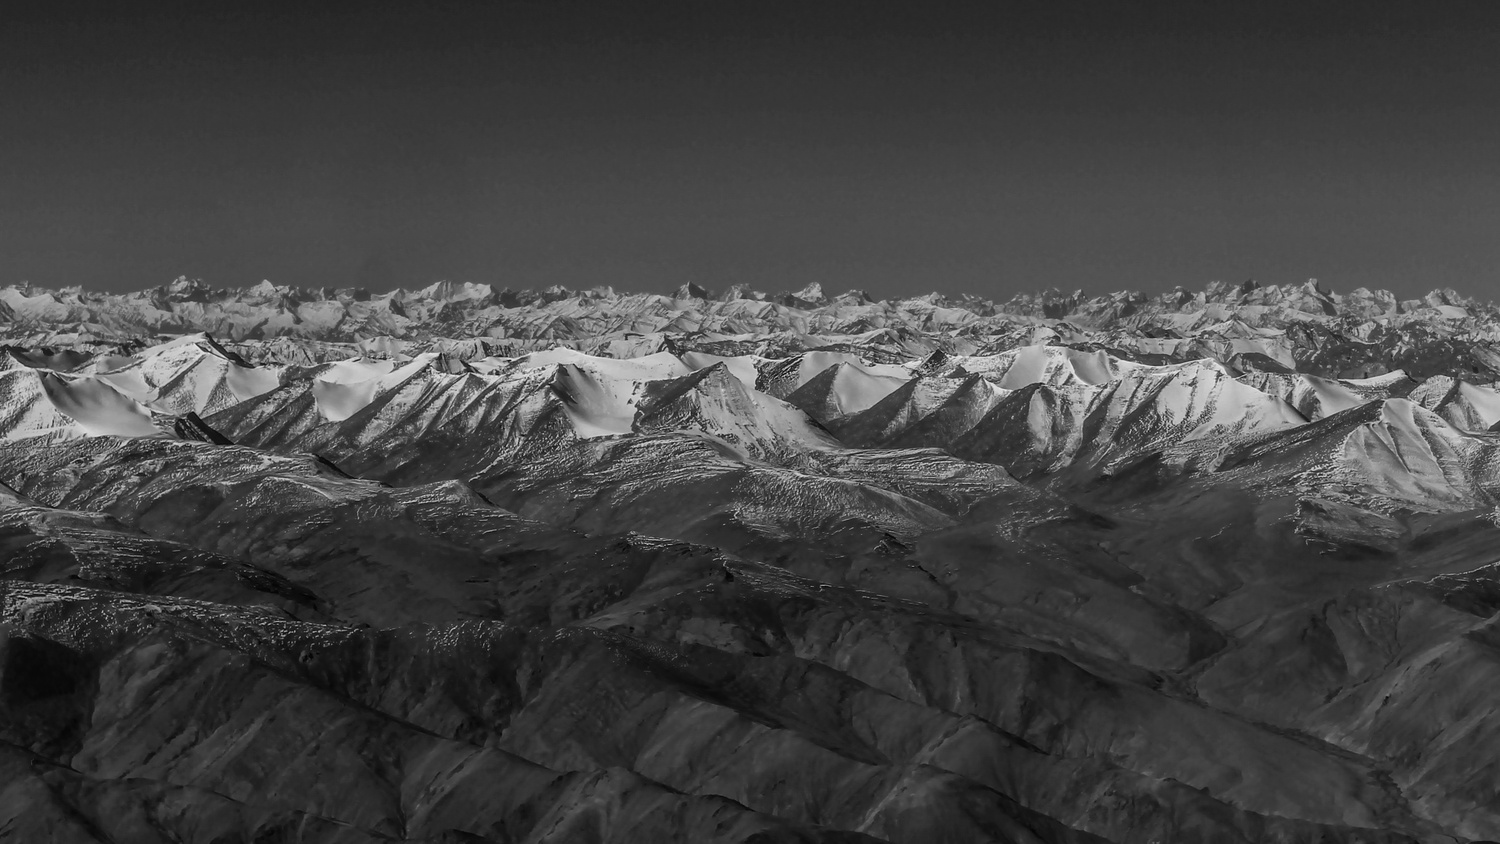 Seascape at 19,000 Feet by Manish Sinha